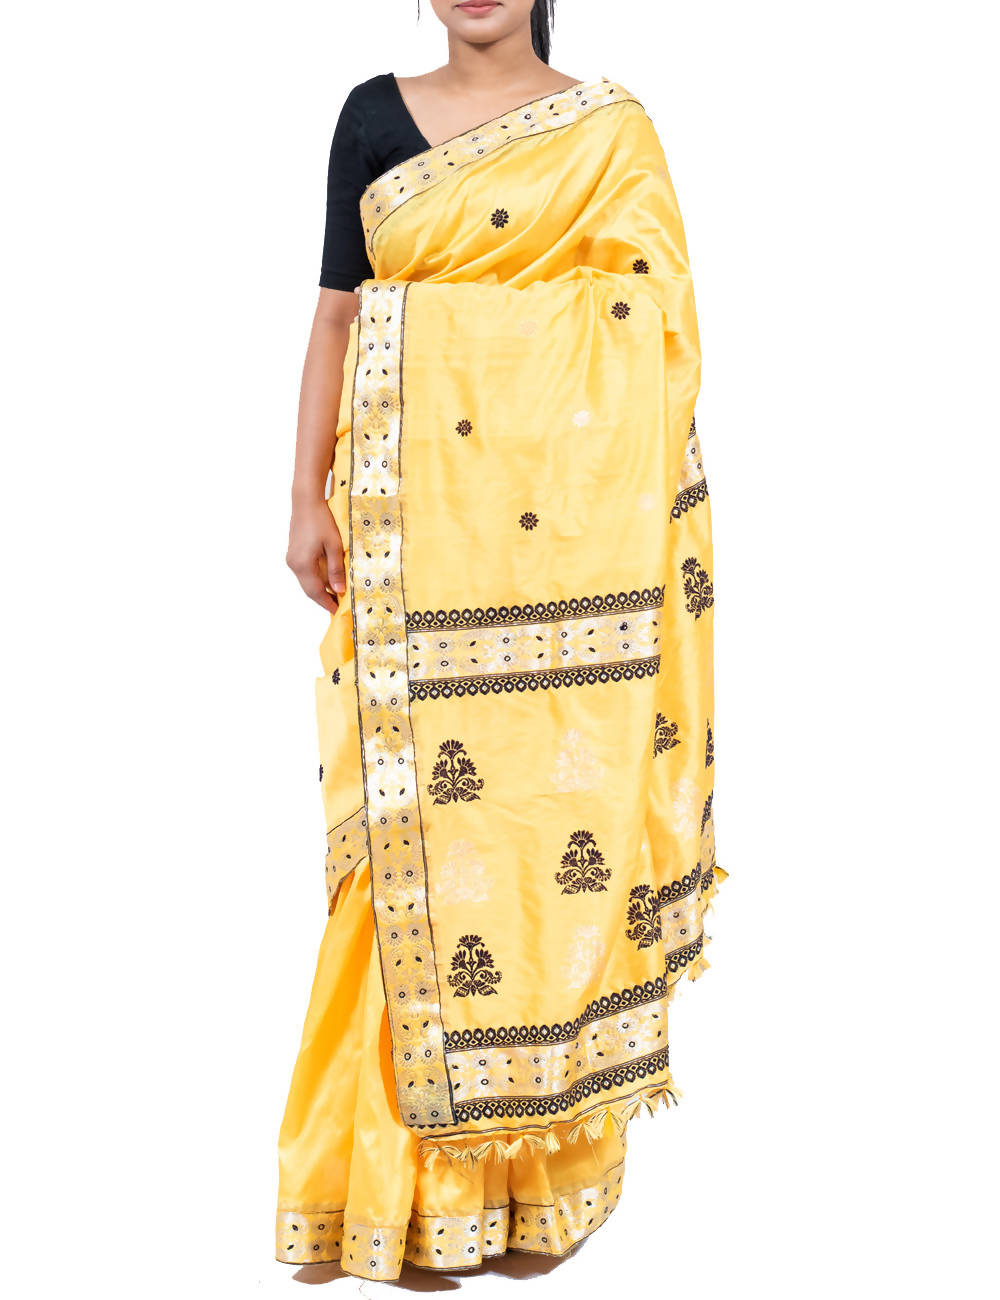 Daffodil Yellow Cotton Assam Handloom Saree